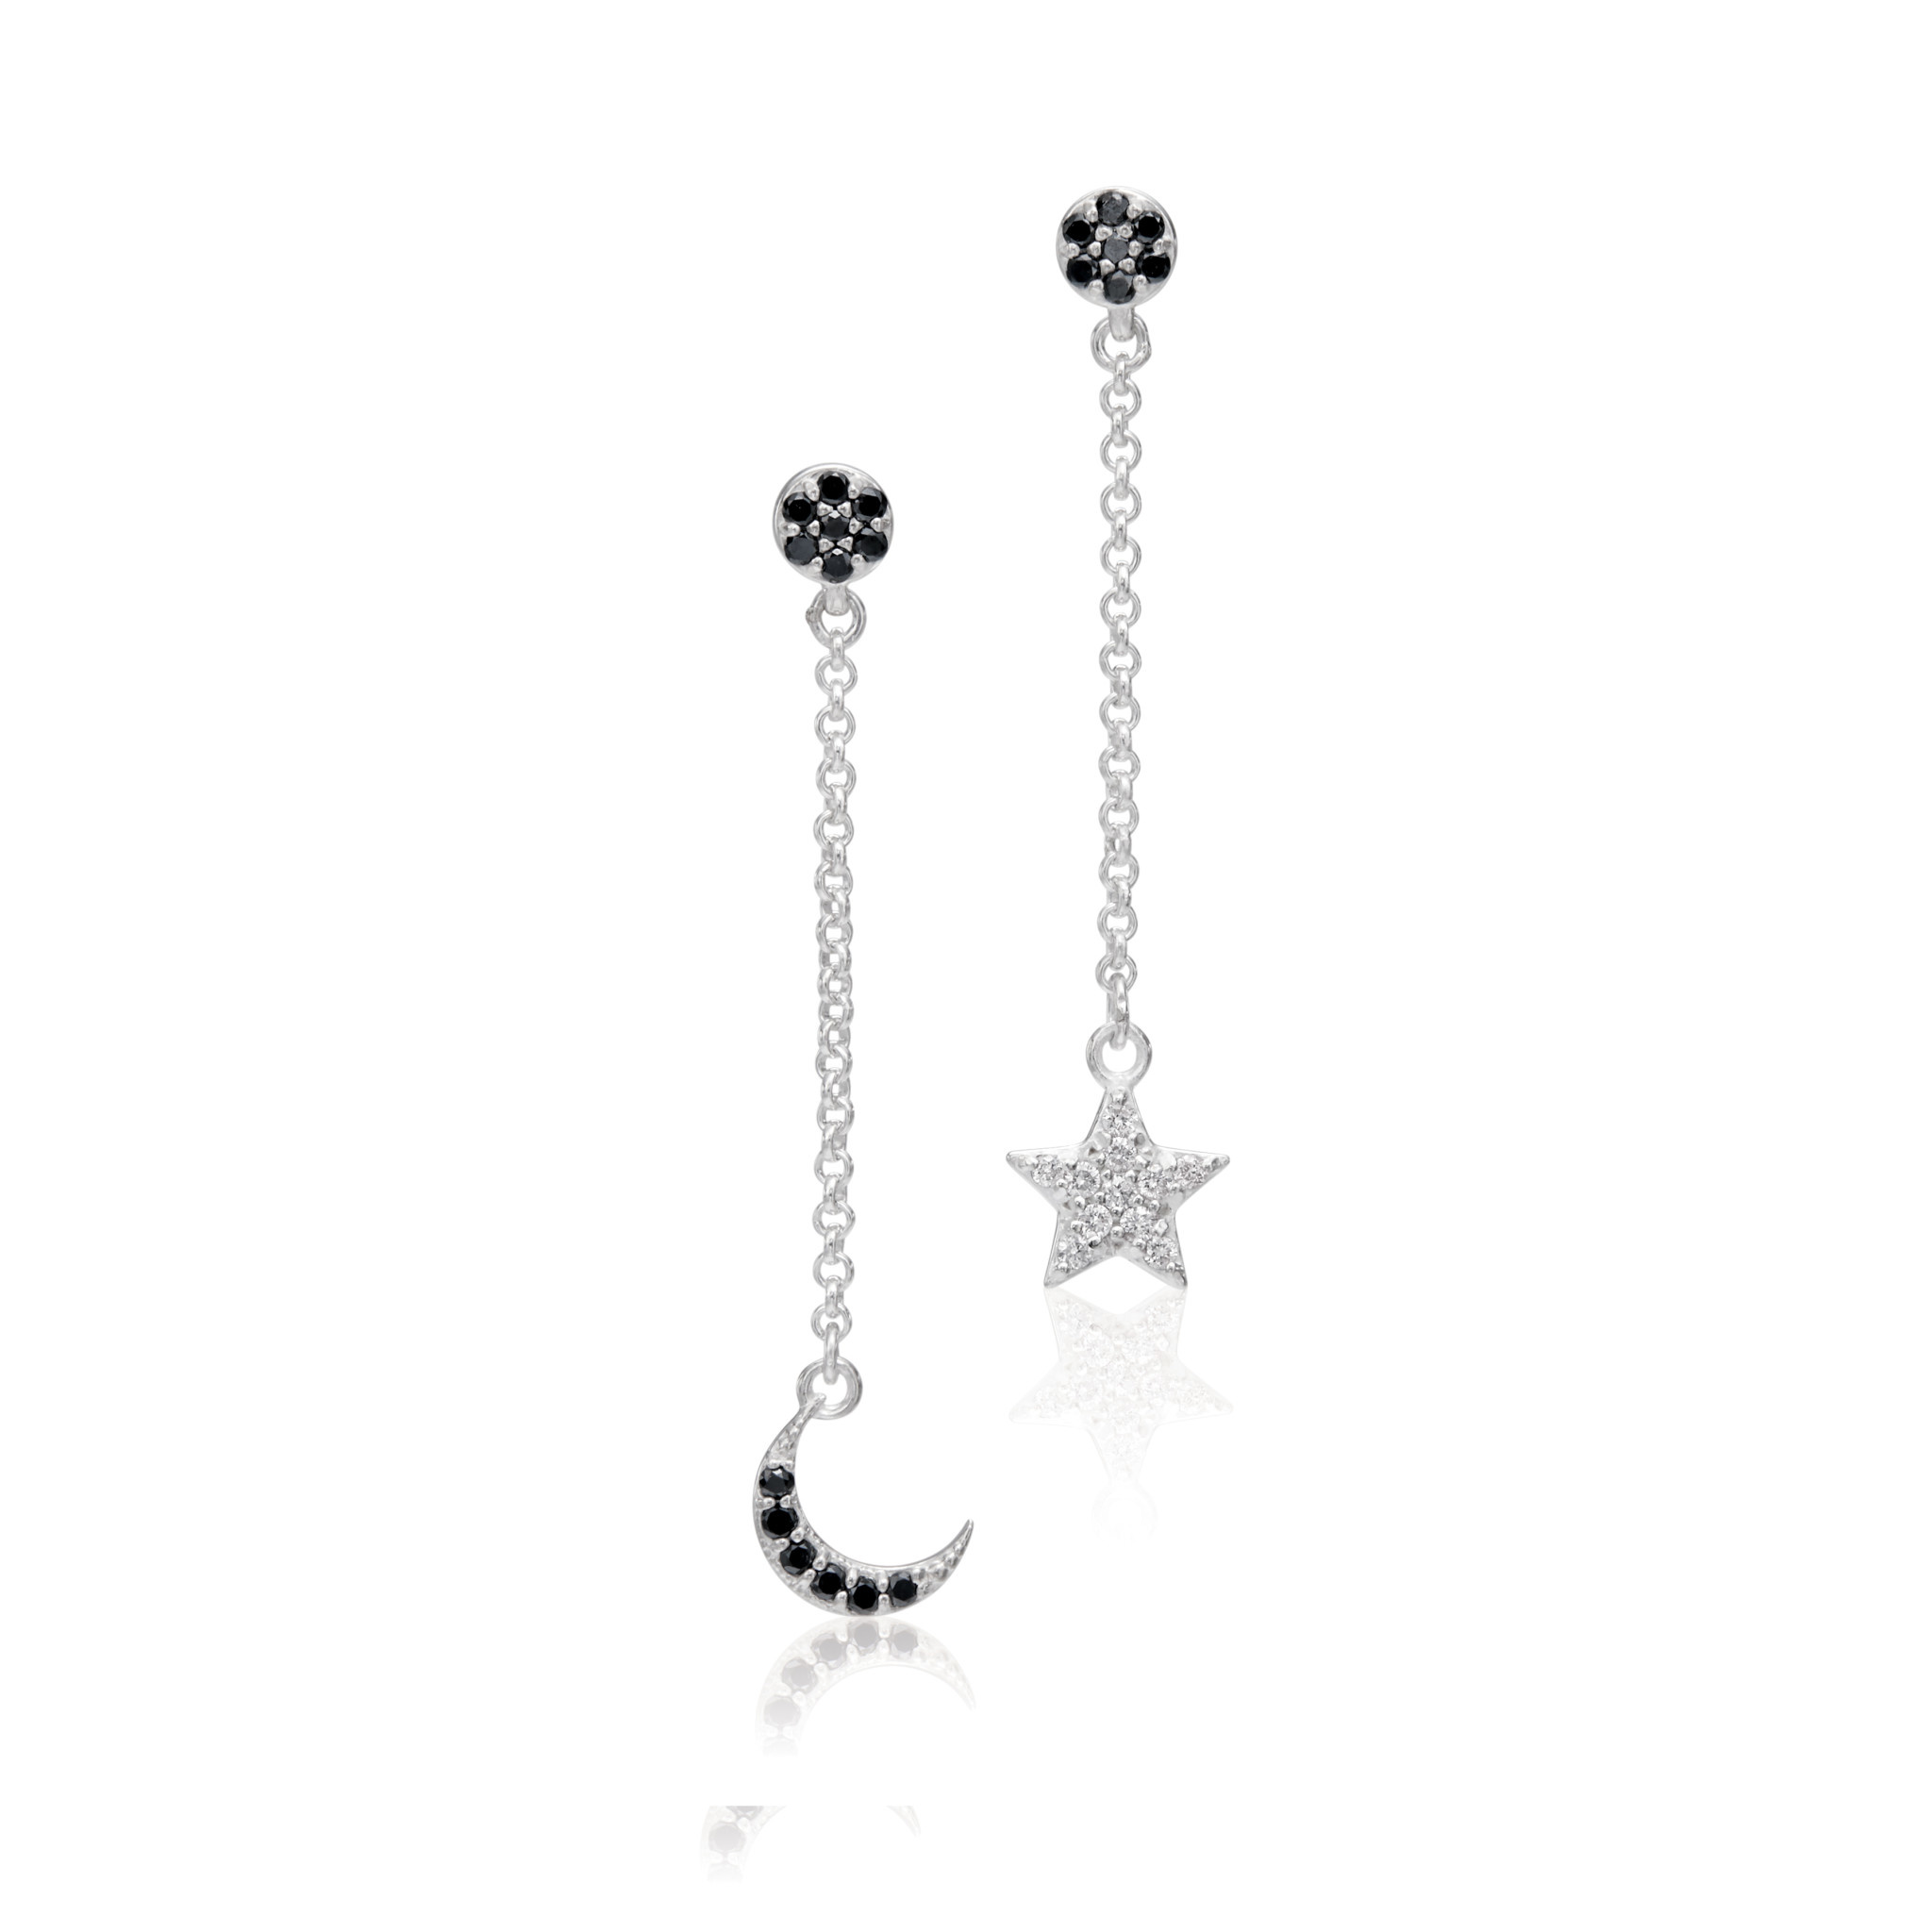 Misahara Night Sky Earrings